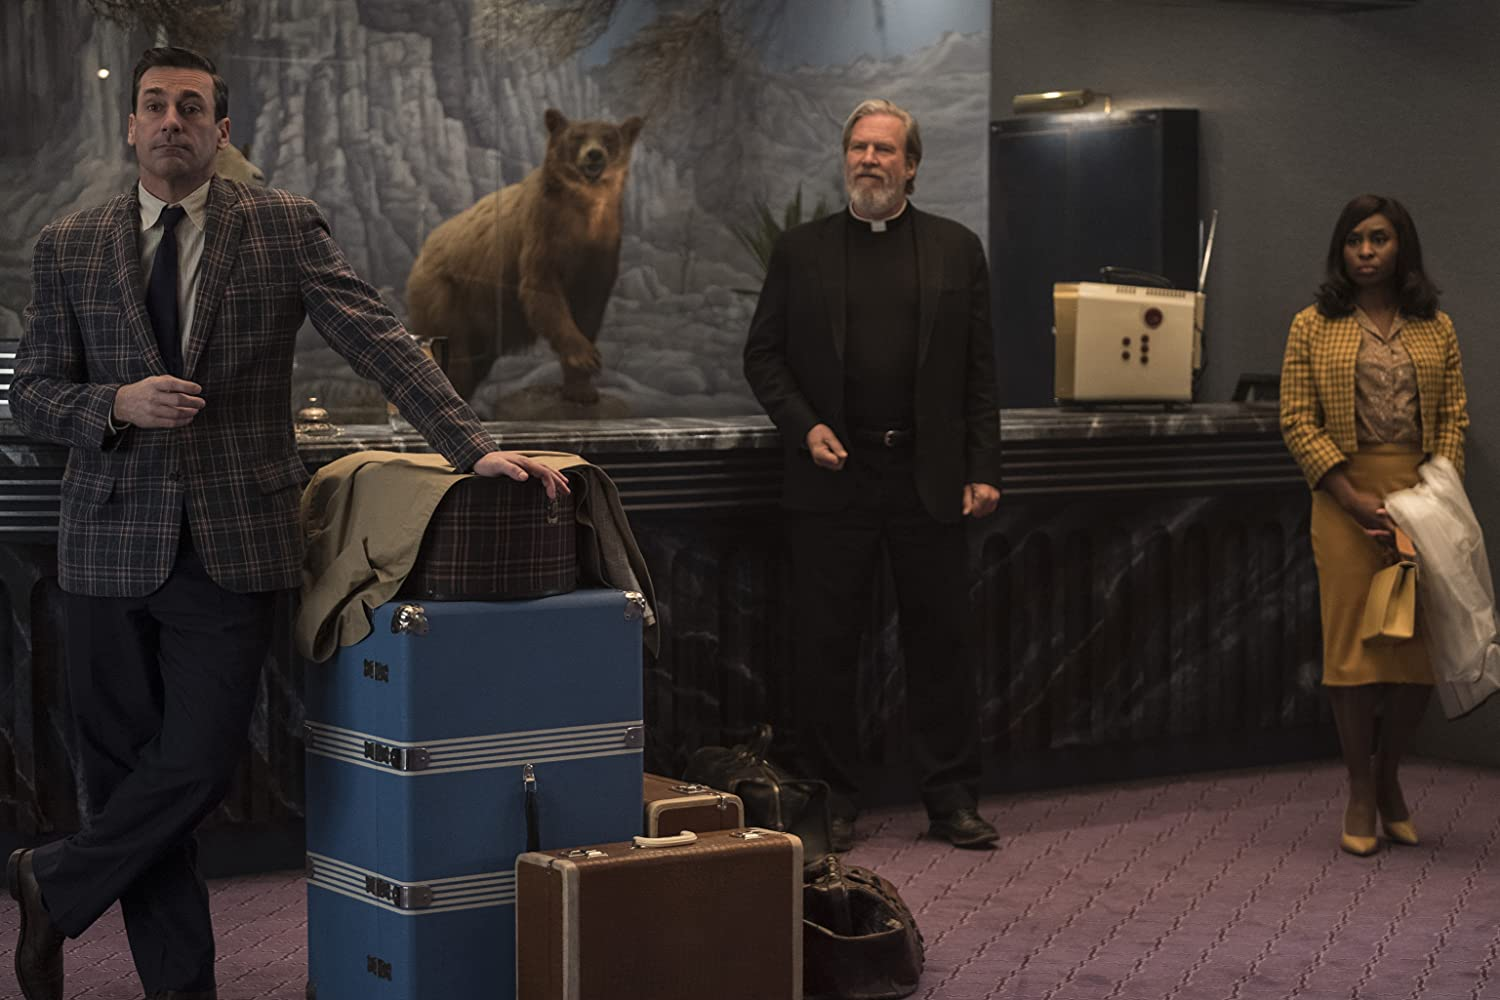 Jeff Bridges, Jon Hamm, and Cynthia Erivo in Bad Times at the El Royale (2018)